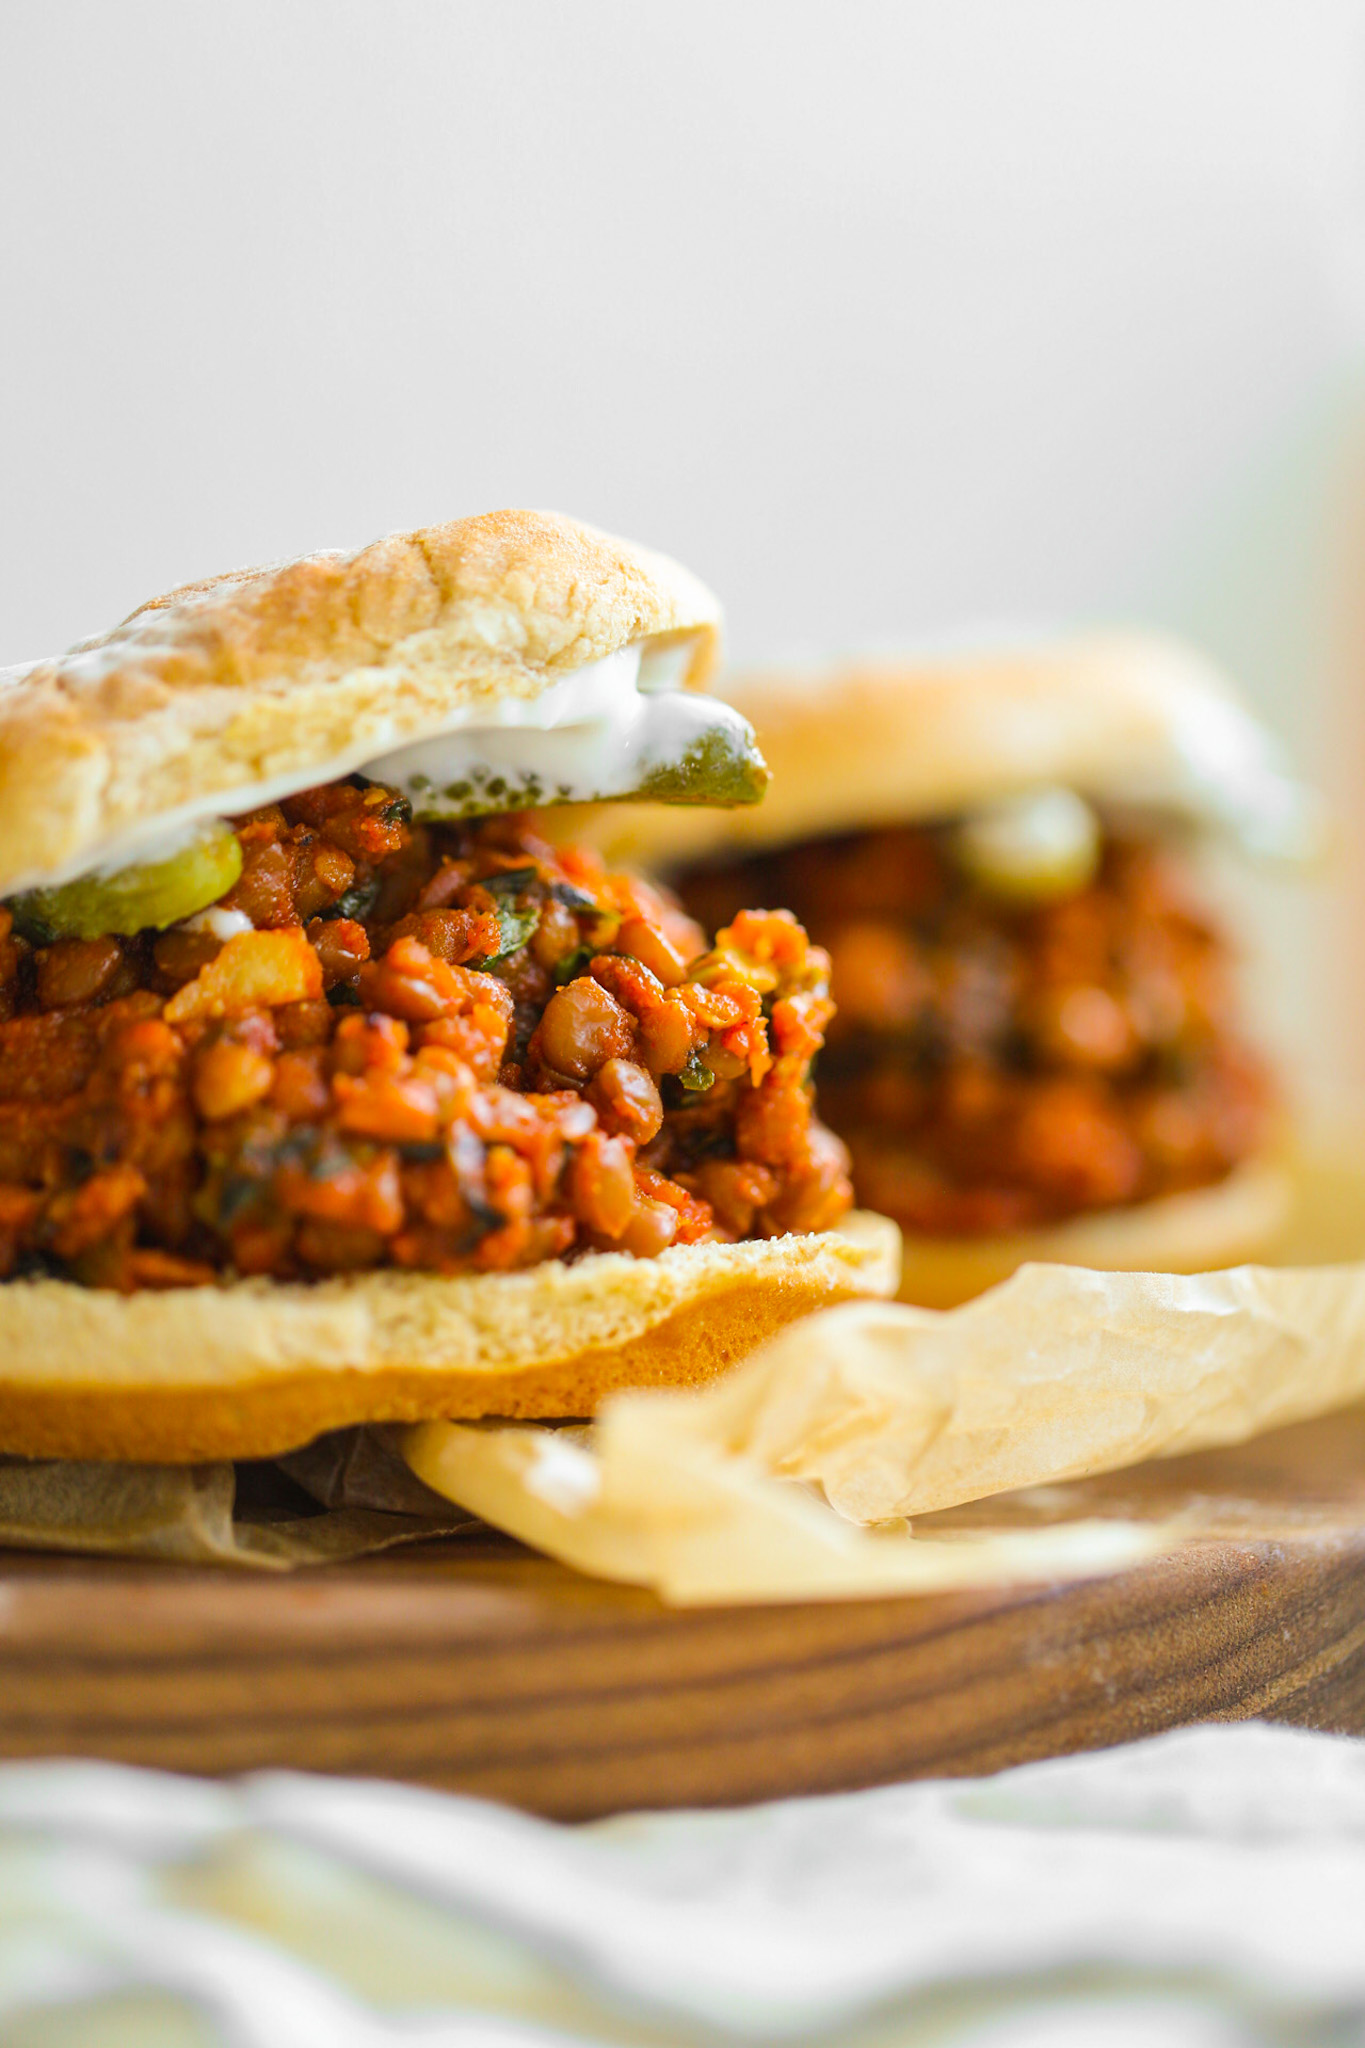 vegan sloppy joes on buns with pickles